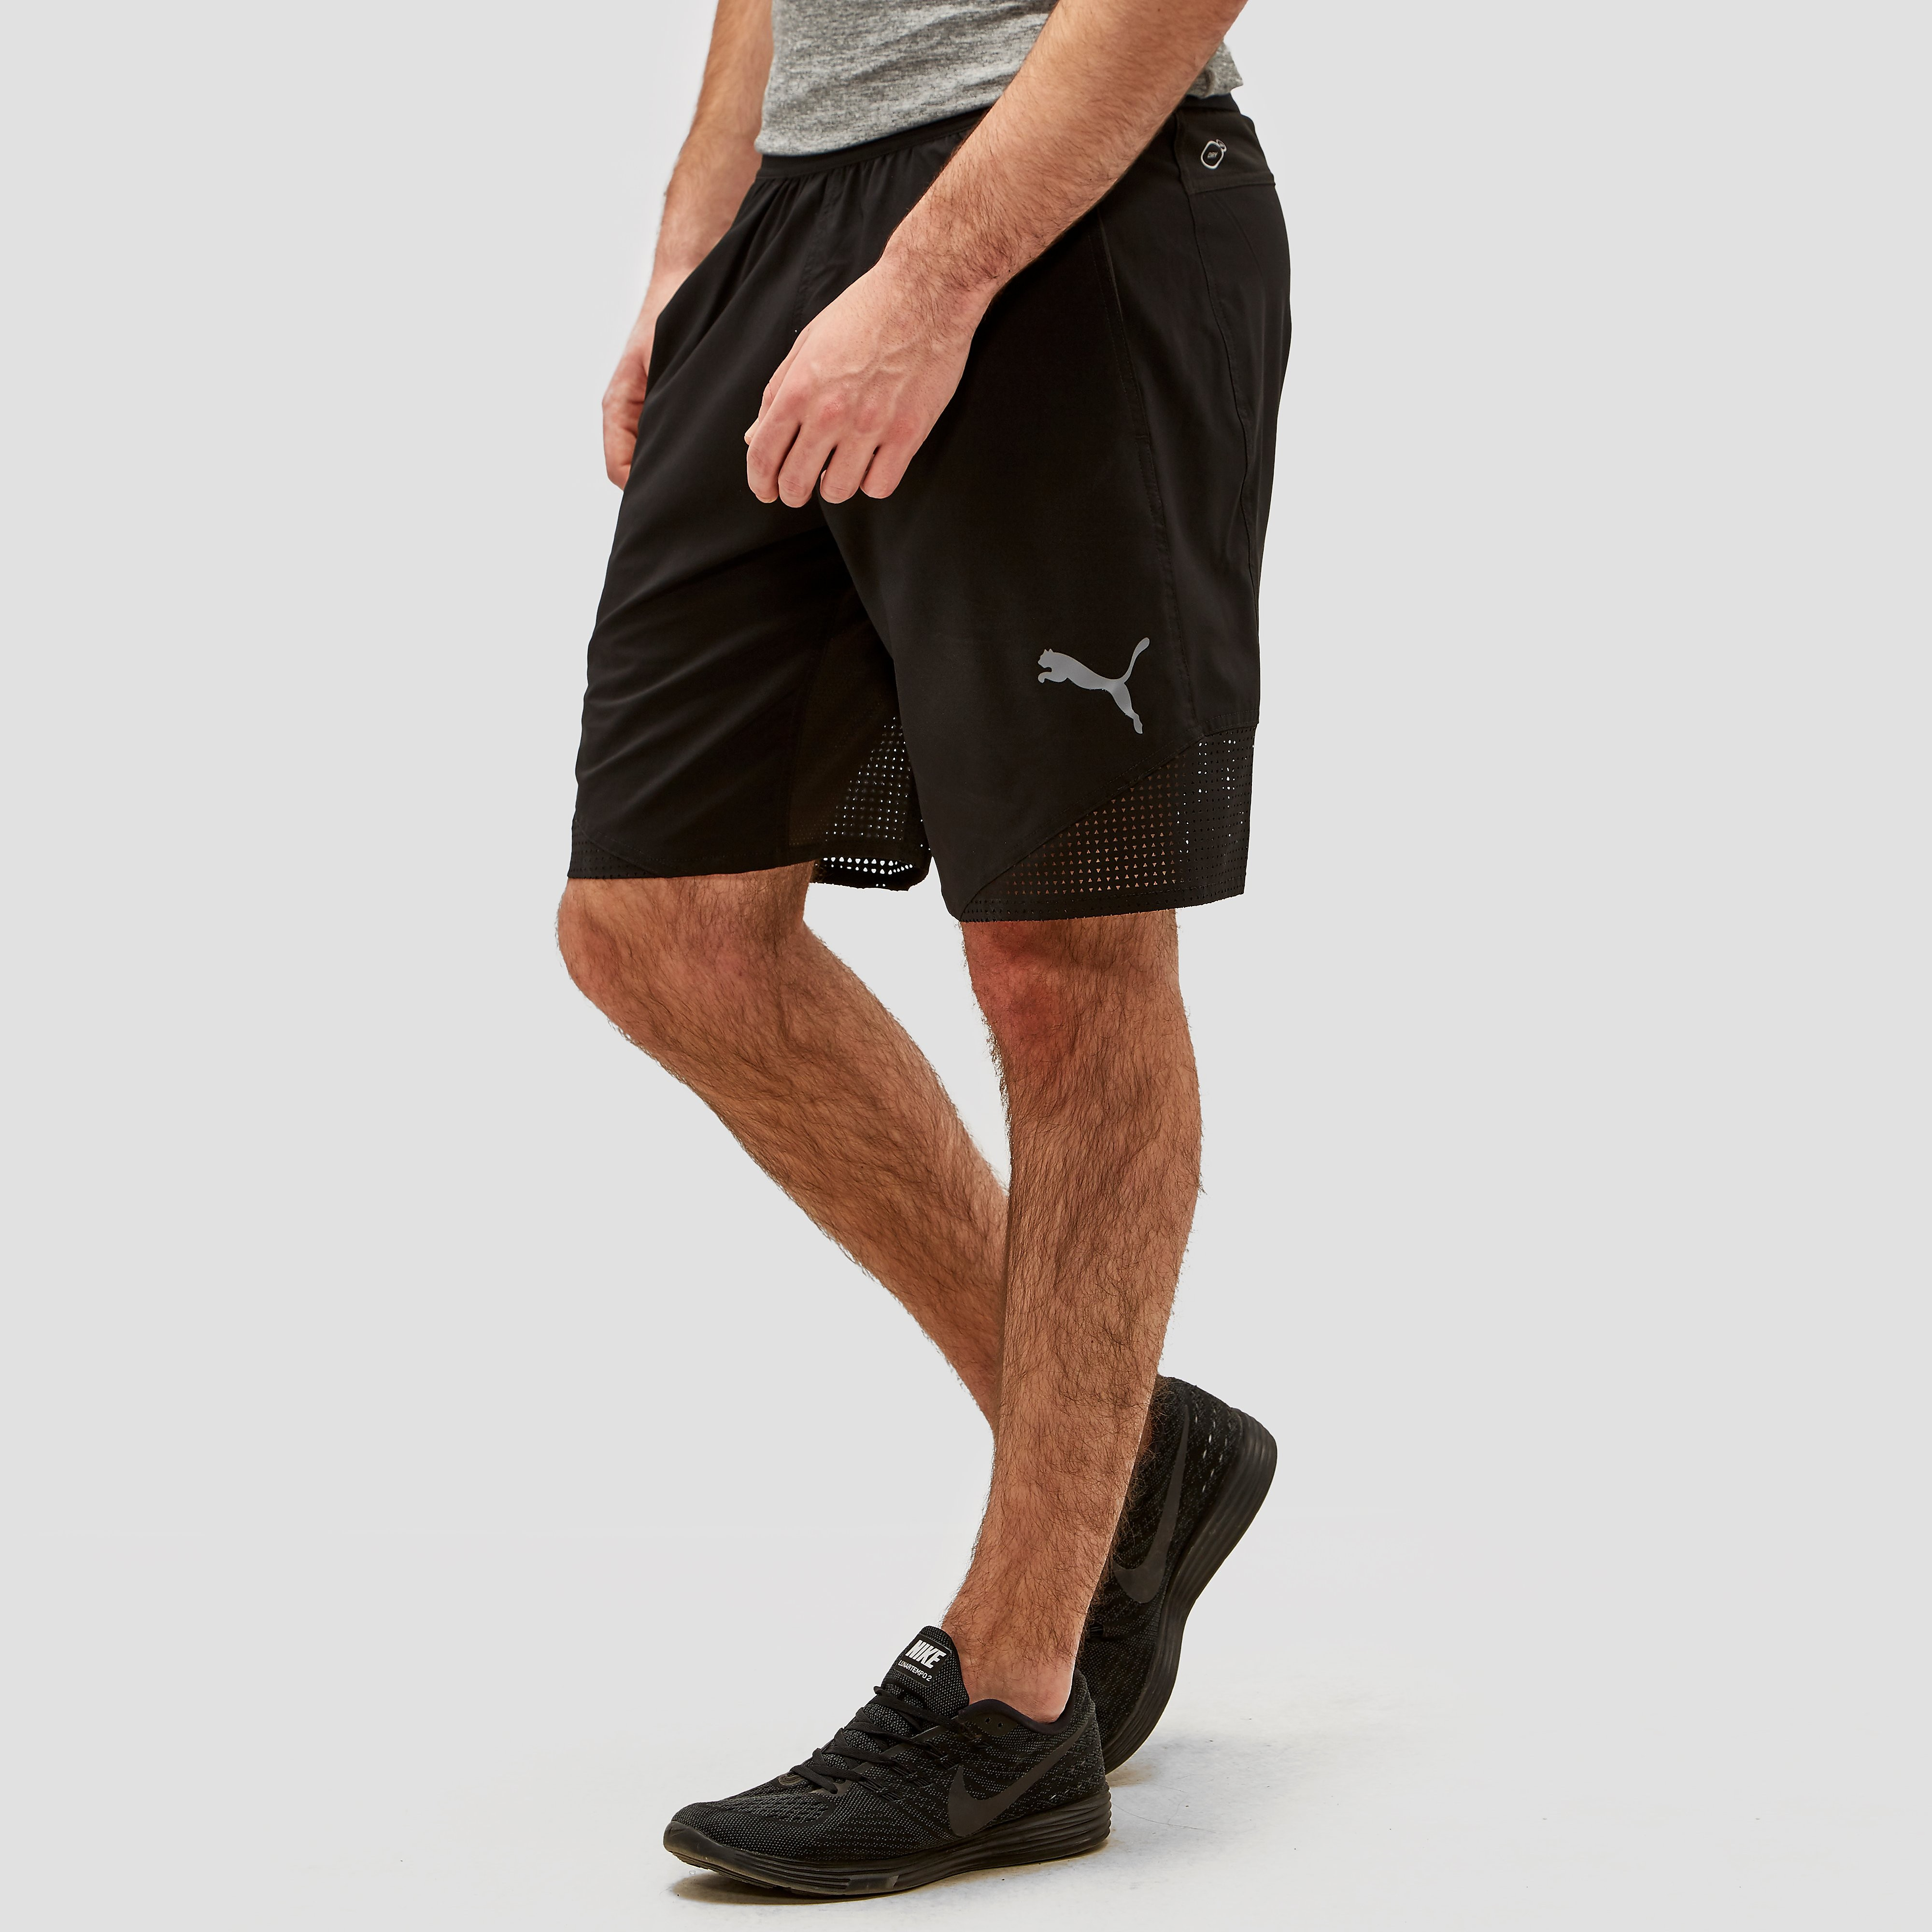 PUMA VENT STRETCH SHORT